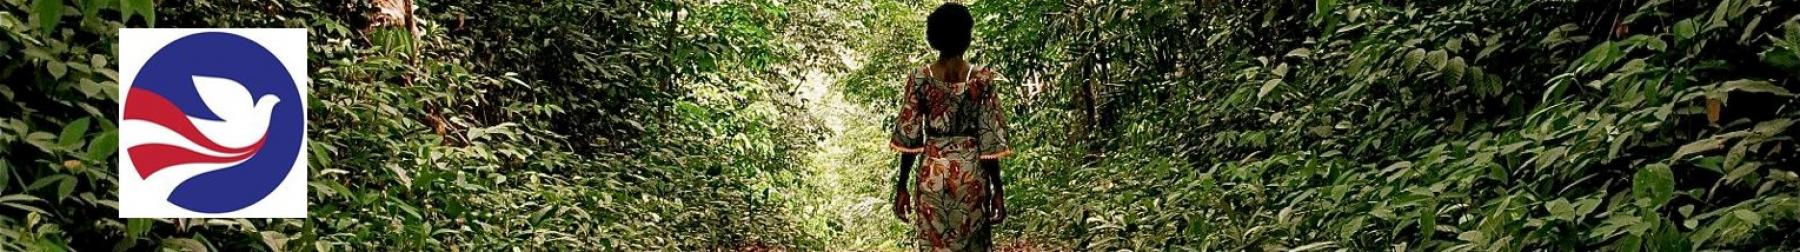 A woman in traditional garb walks through a forest in Liberia. The Peace Corp symbol appears to the left of the photo.